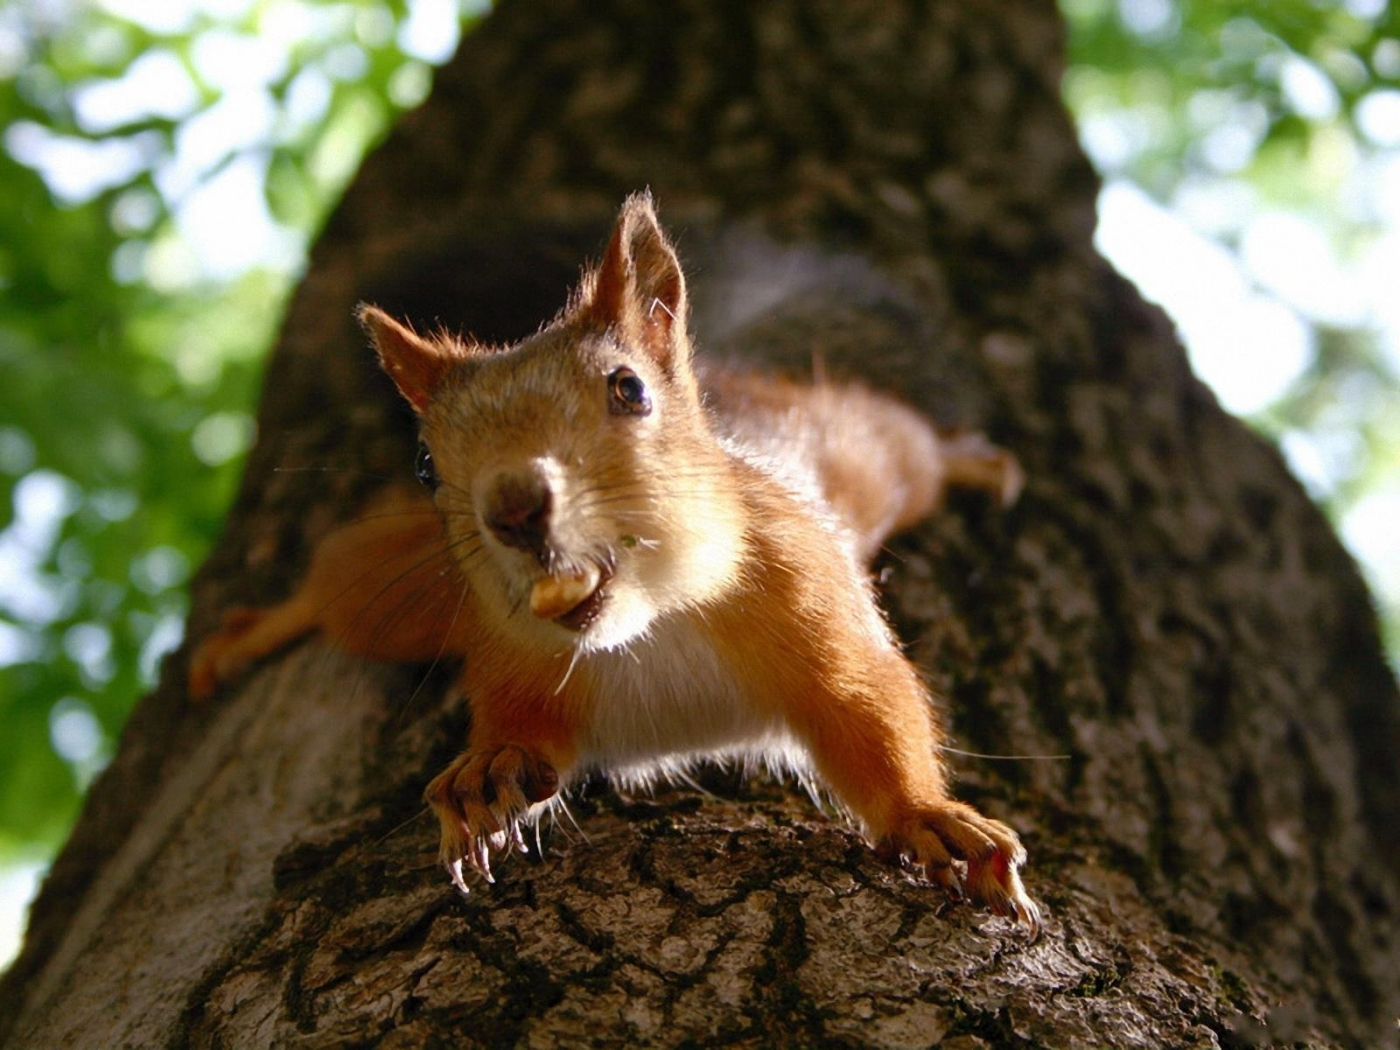 37797 download wallpaper Animals, Squirrel screensavers and pictures for free